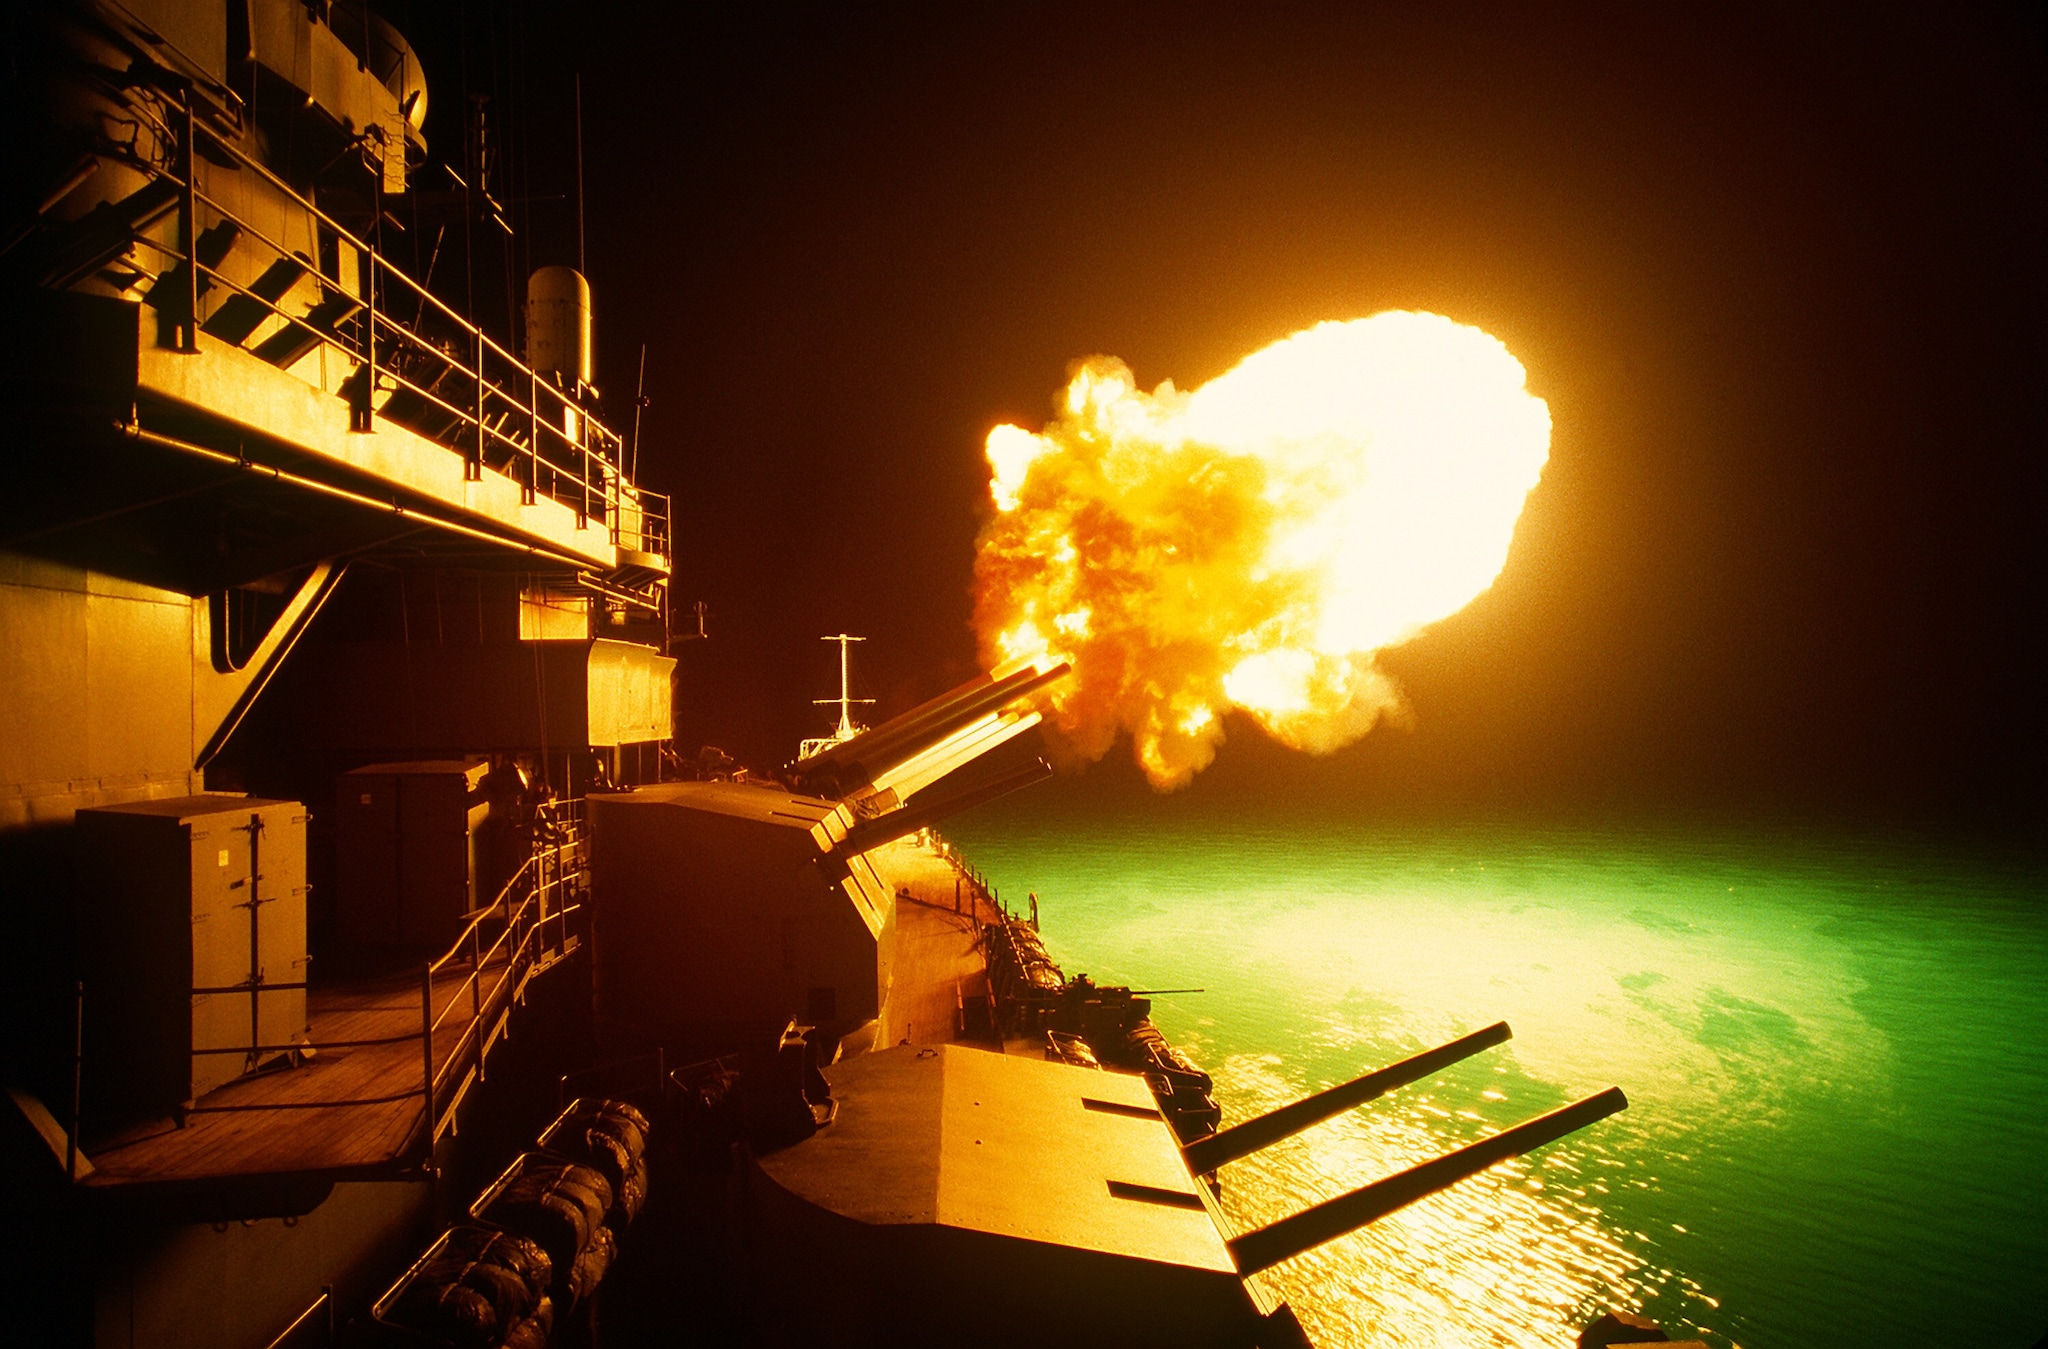 A Mark 7 16-inch/50 caliber gun is fired aboard the battleship USS MISSOURI (BB-63) as night shelling of Iraqi targets takes place along the northern Kuwaiti coast during Operation Desert Storm. (Photo: National Archives)